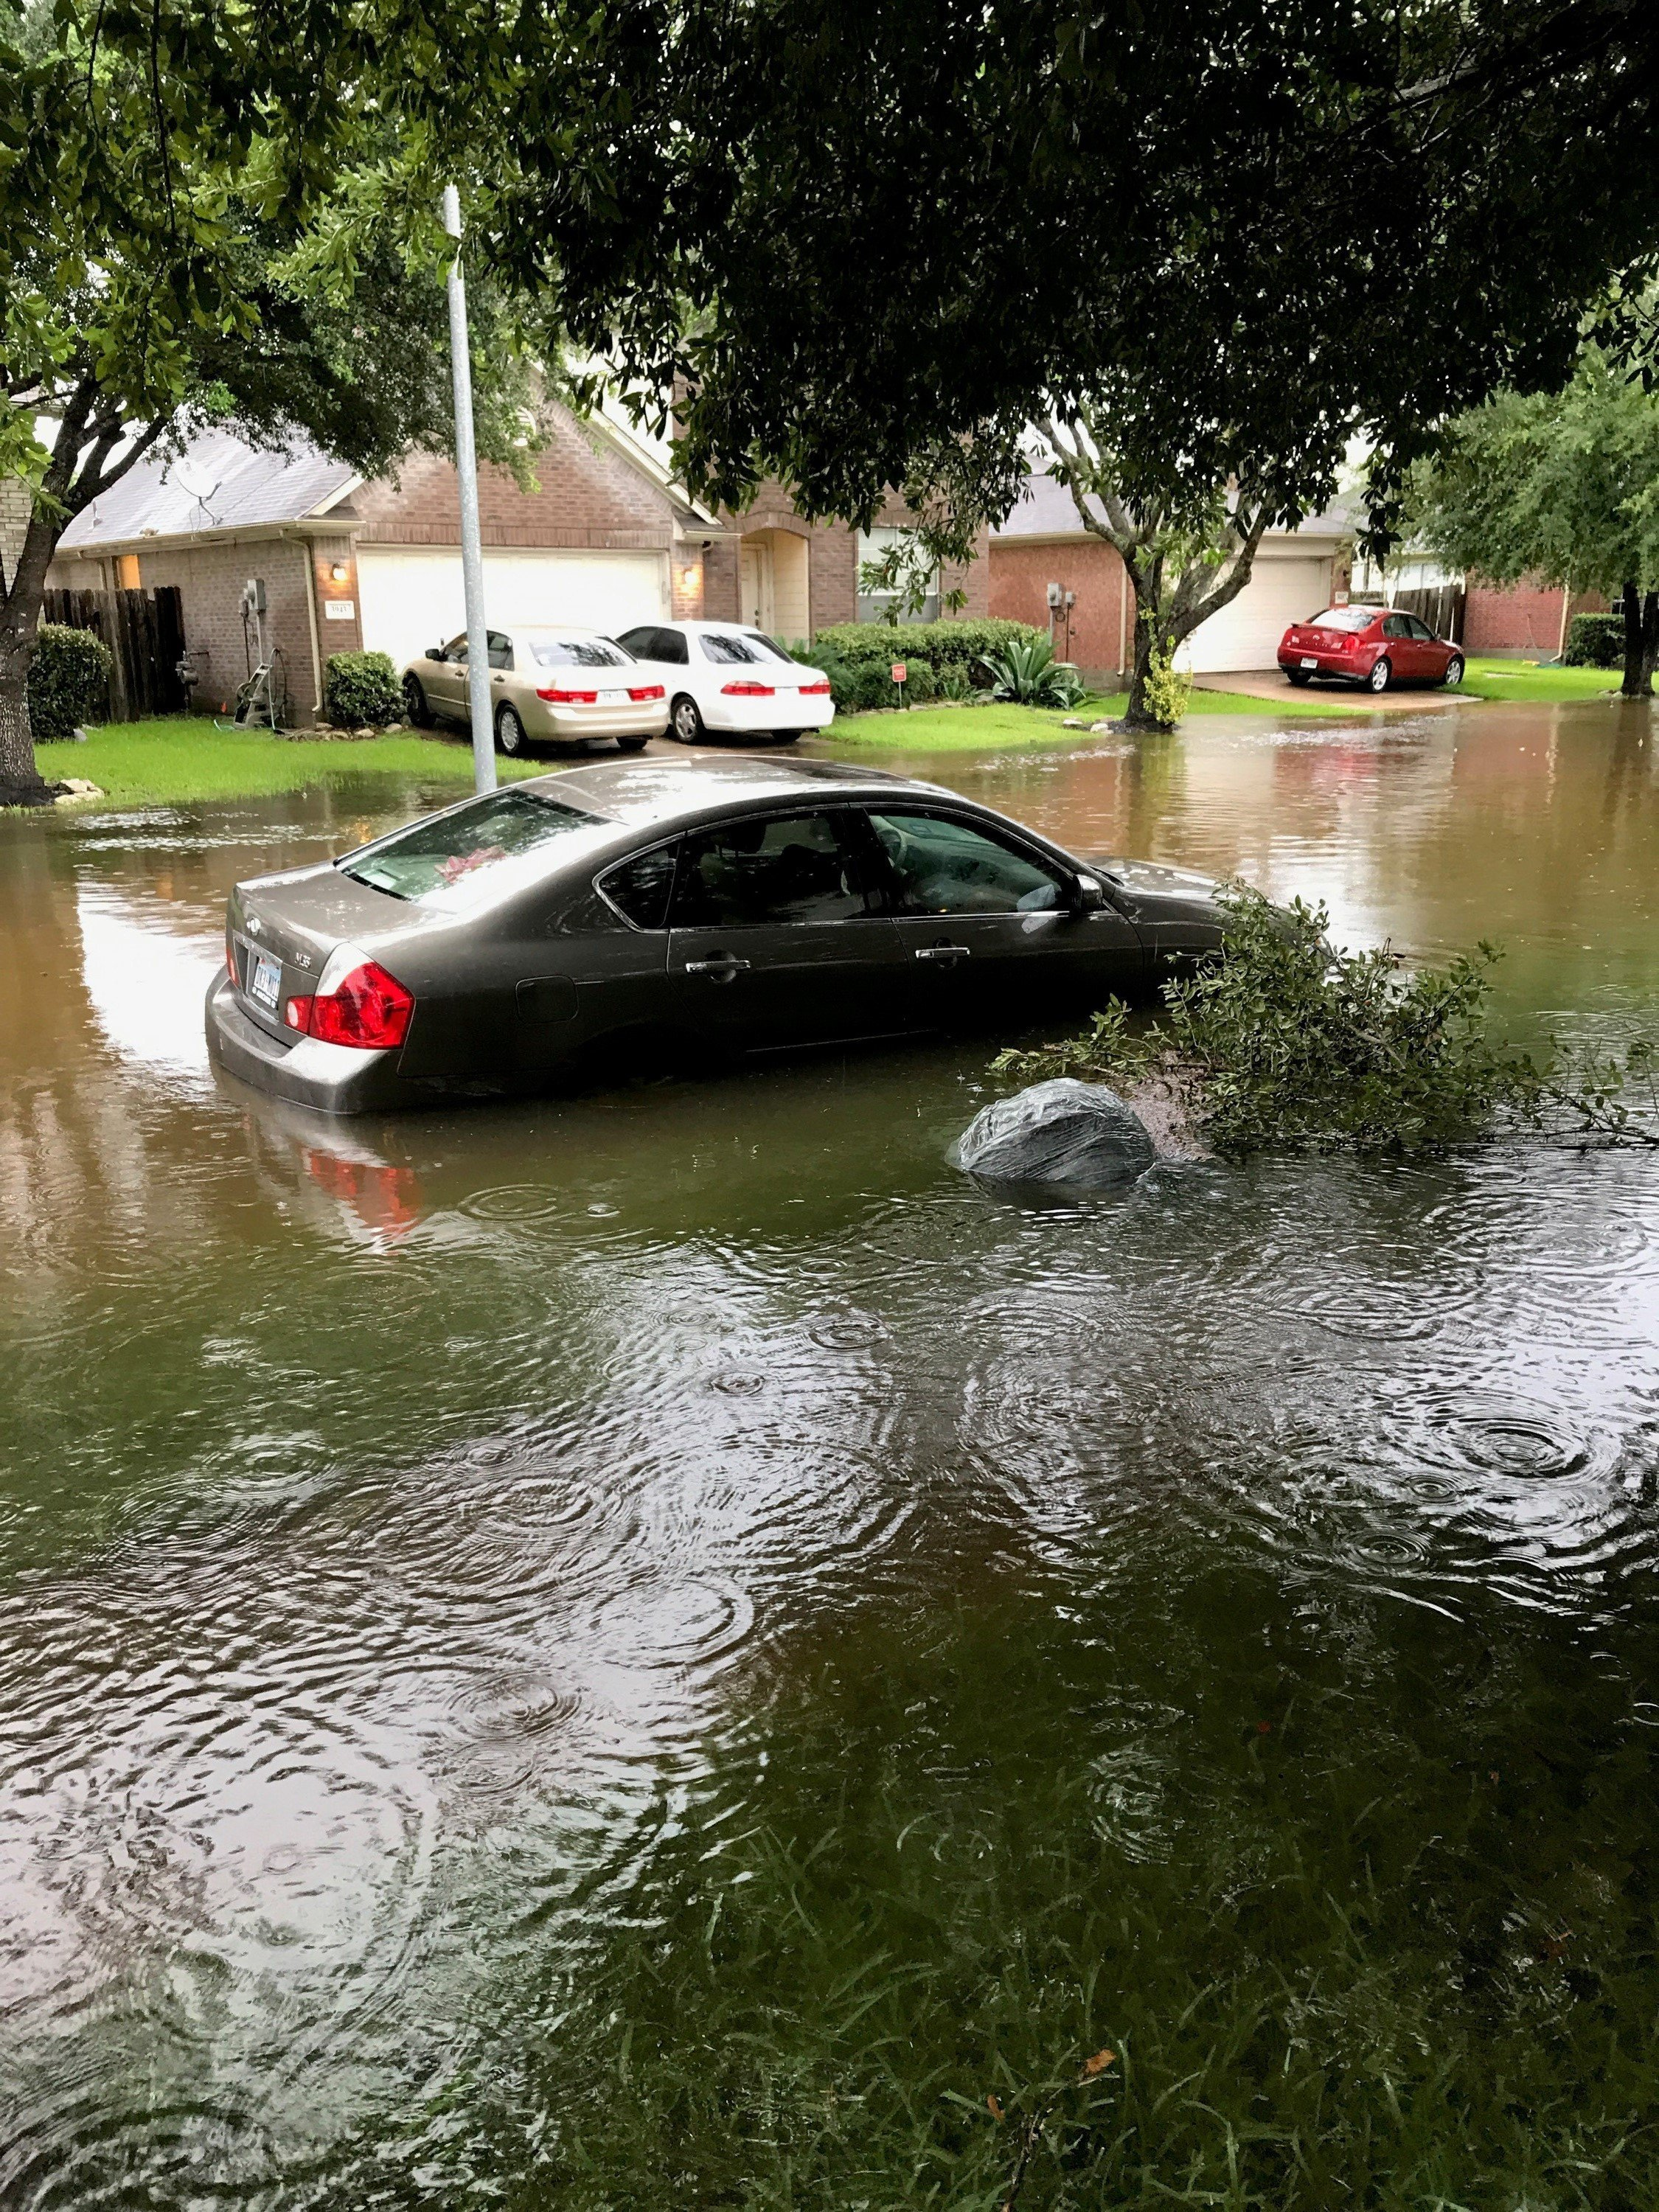 Flooding in Fresno Texas following Hurricane Harvey